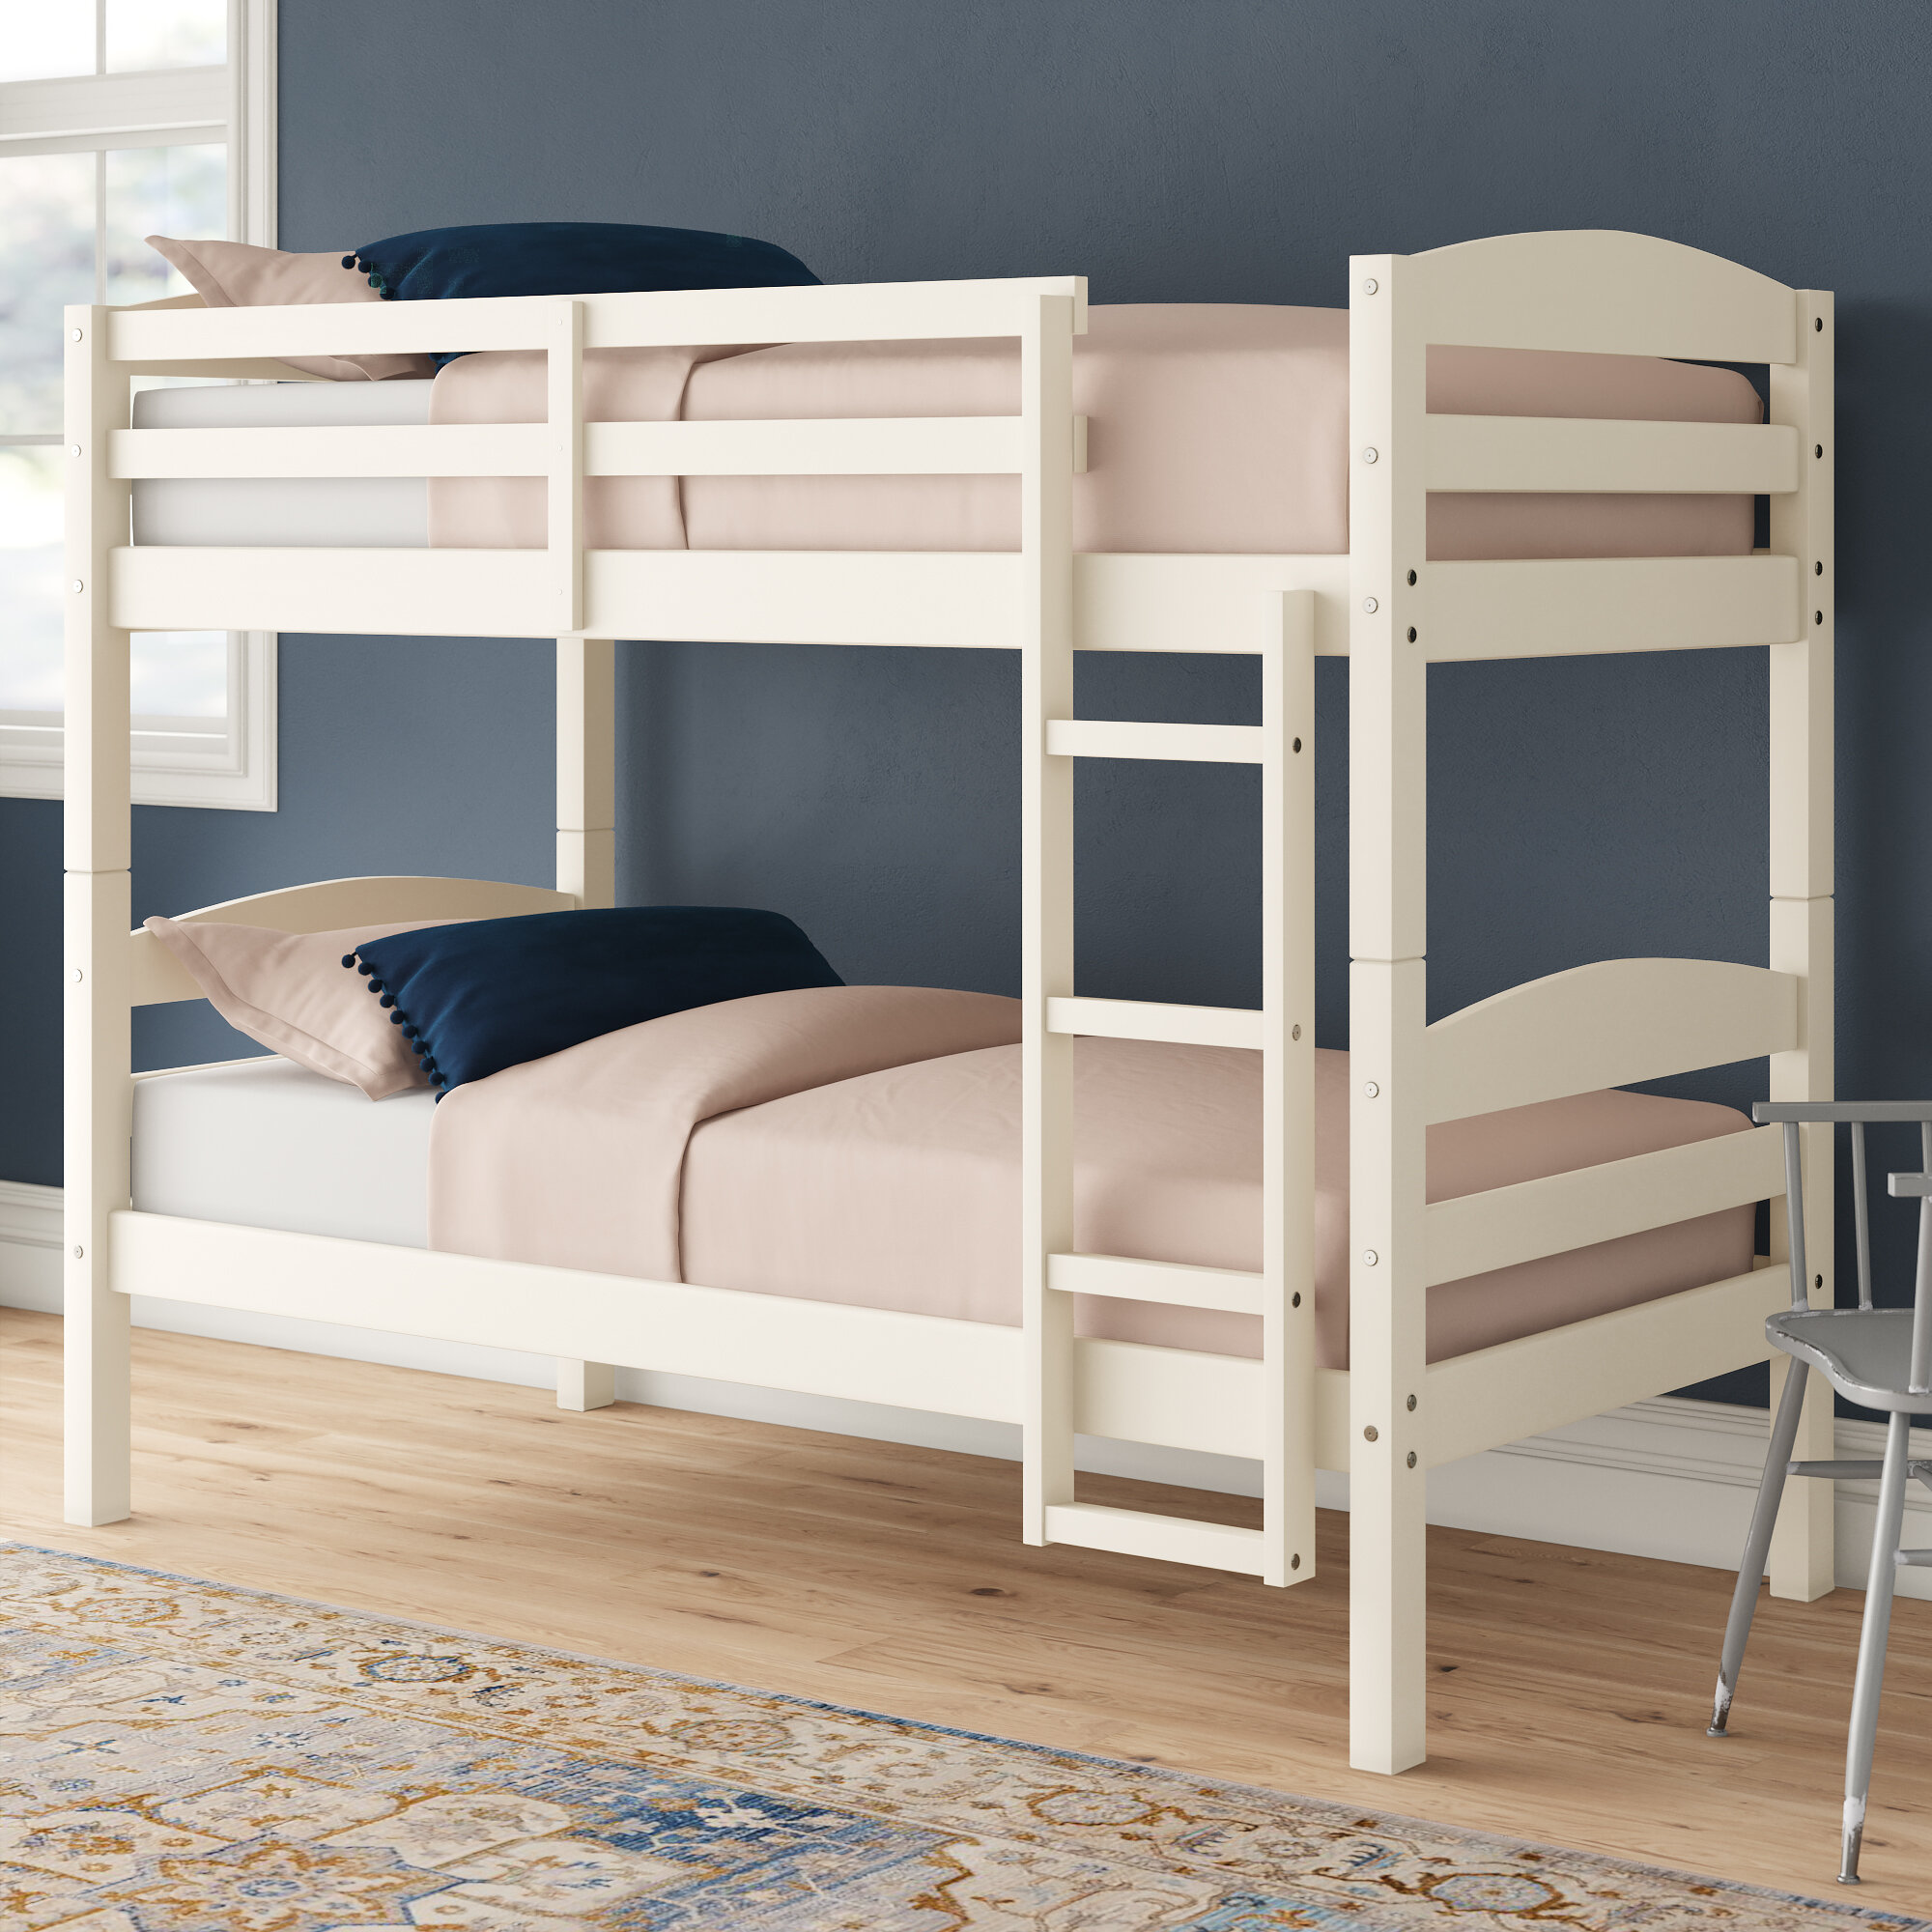 Loft Beds For Sale Craigslist Online Discount Shop For Electronics Apparel Toys Books Games Computers Shoes Jewelry Watches Baby Products Sports Outdoors Office Products Bed Bath Furniture Tools Hardware